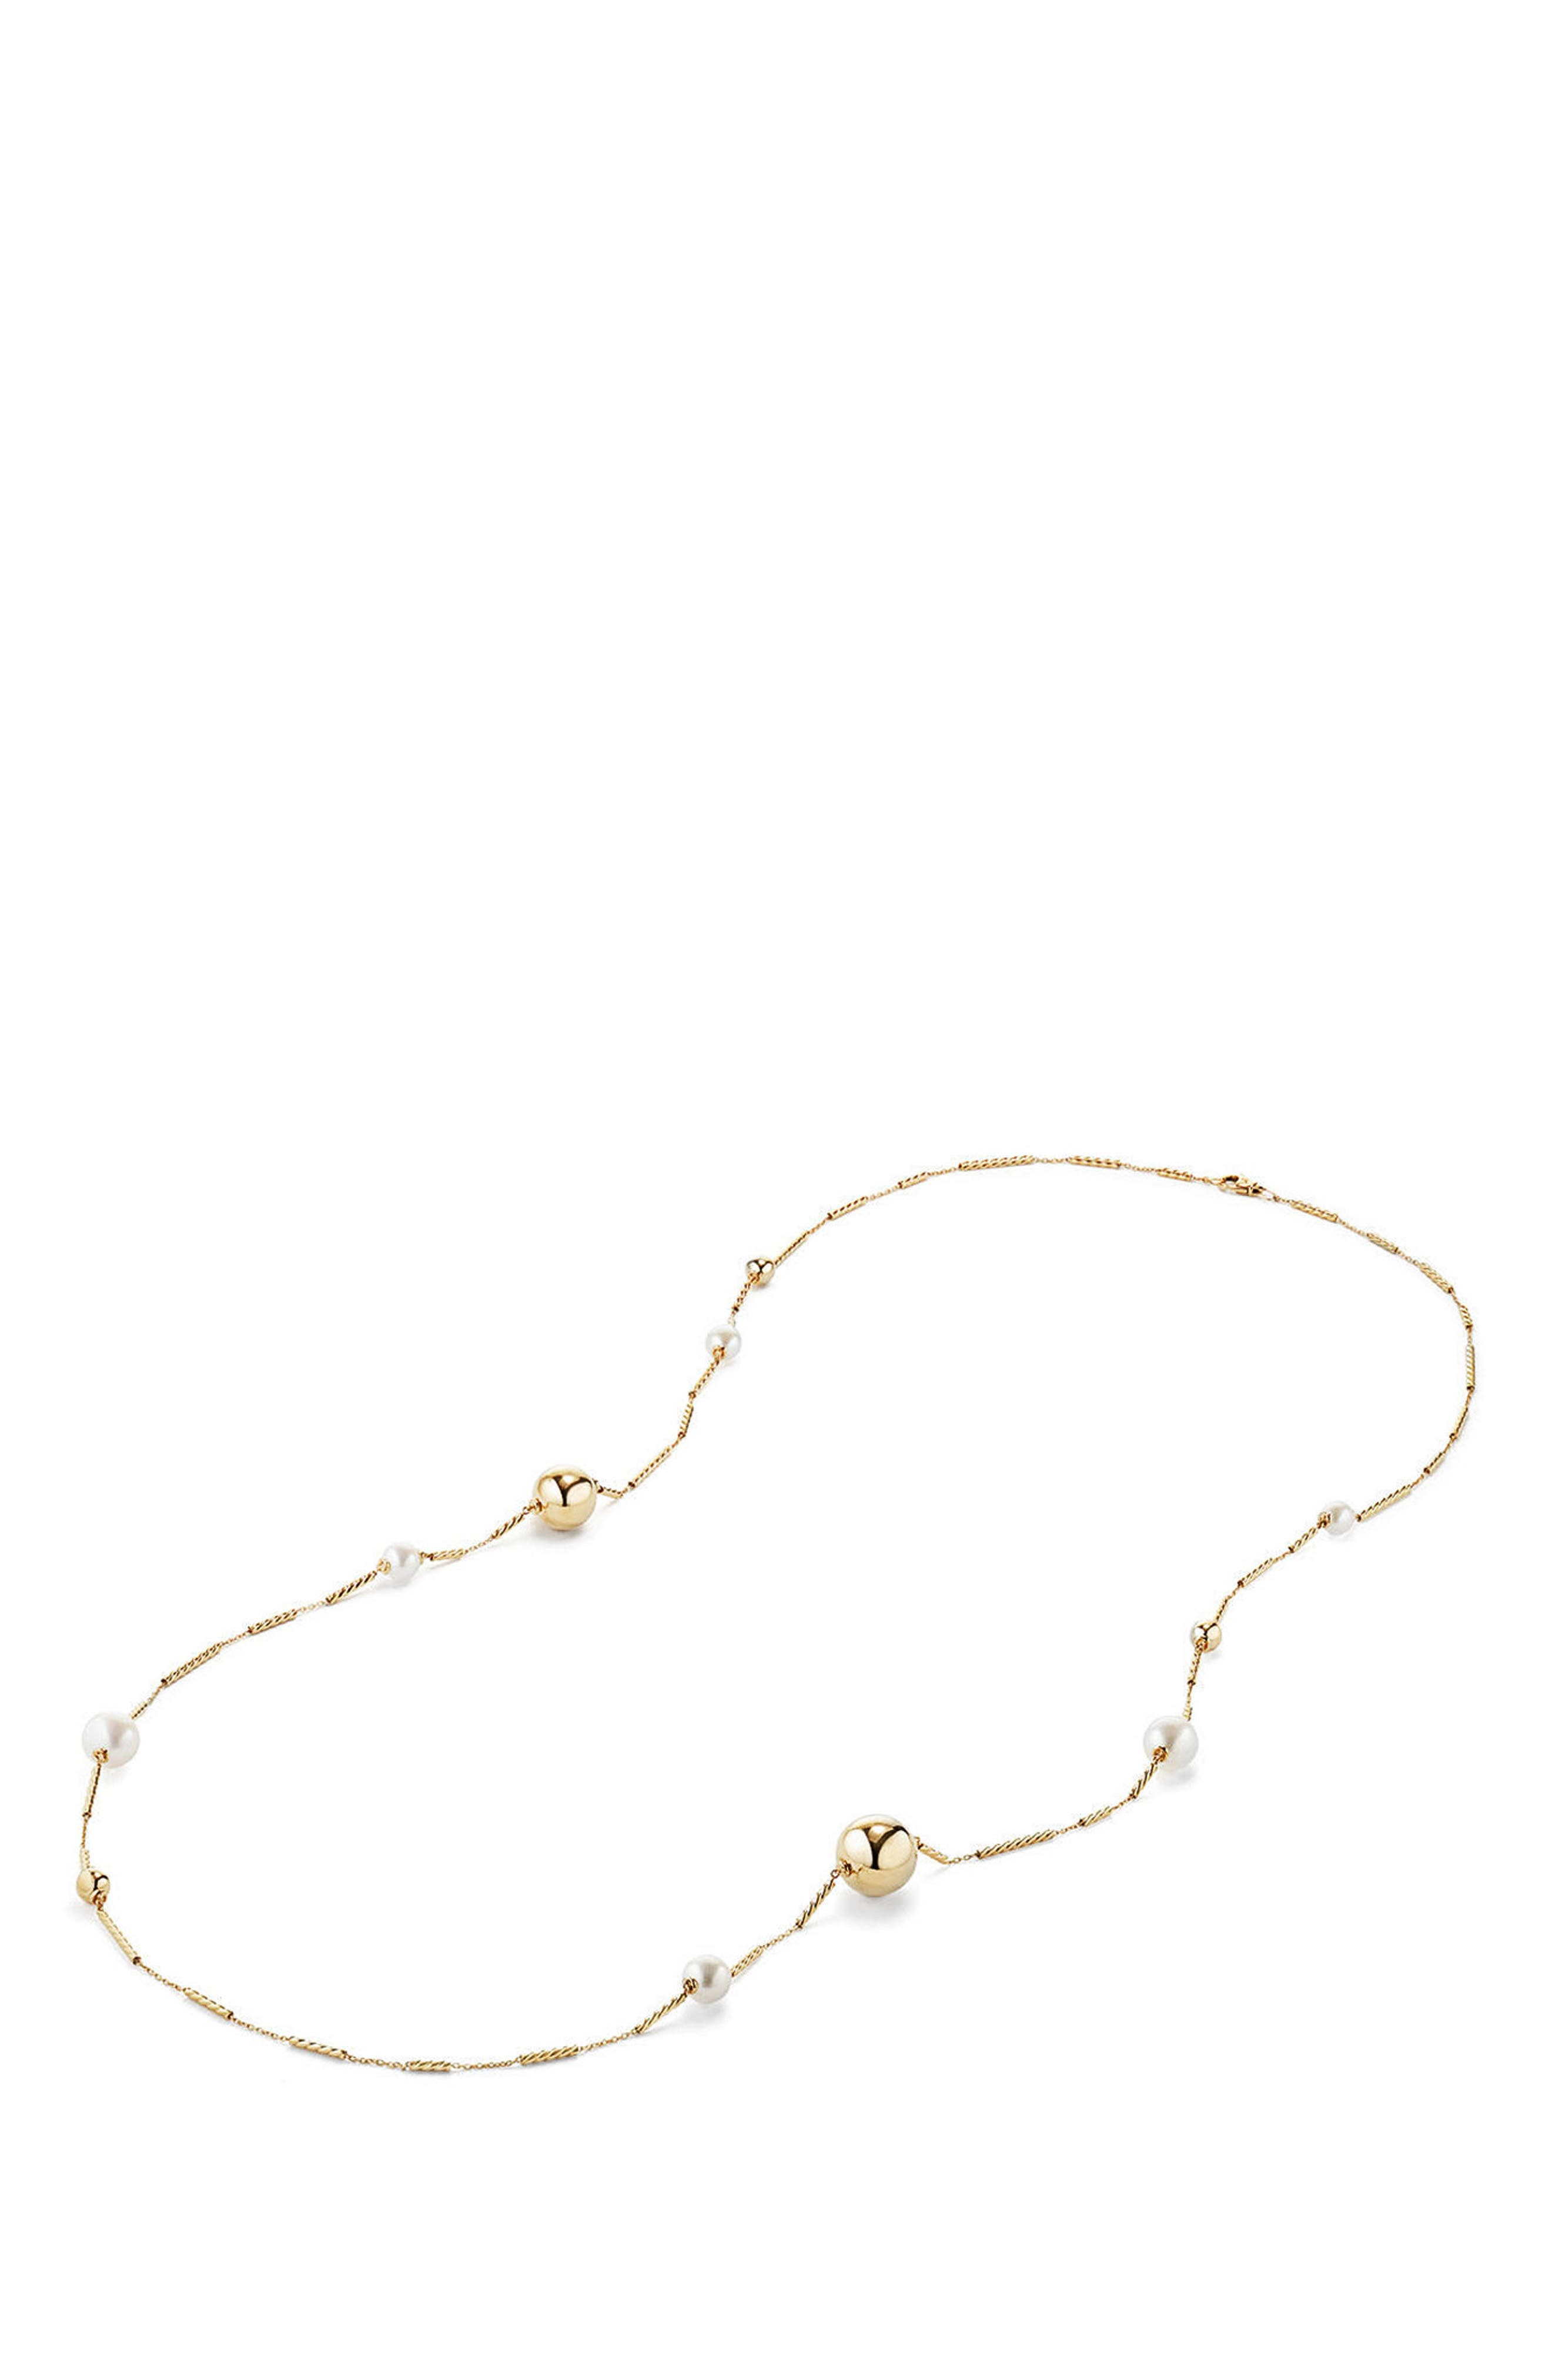 Solari Long Station Necklace with Pearls in 18K Gold,                             Alternate thumbnail 2, color,                             PEARL